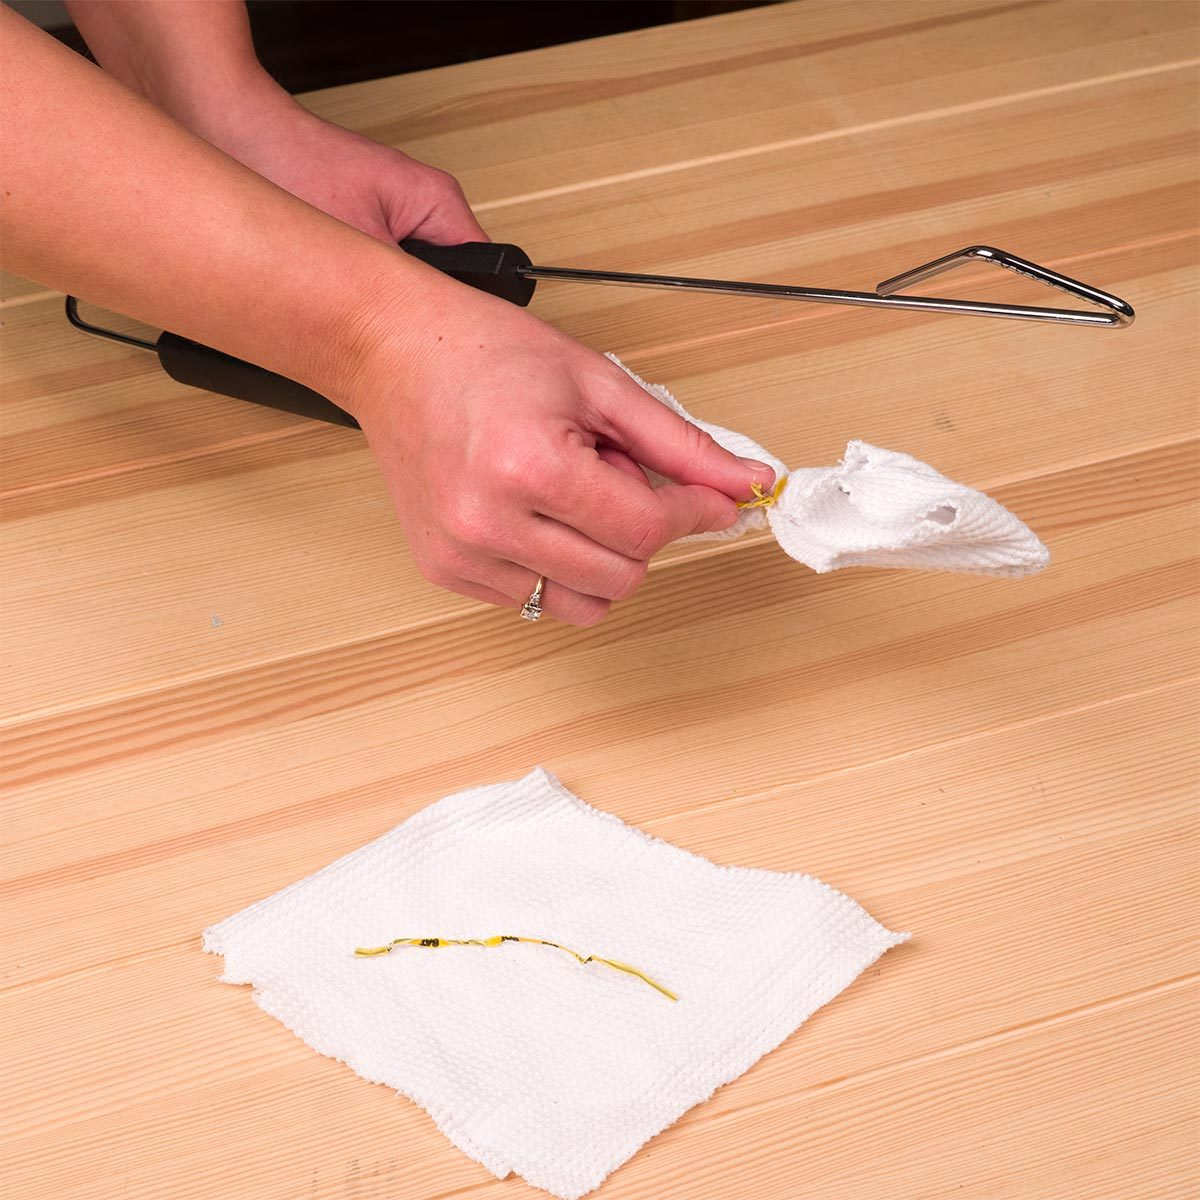 Use Tongs to Clean Blinds